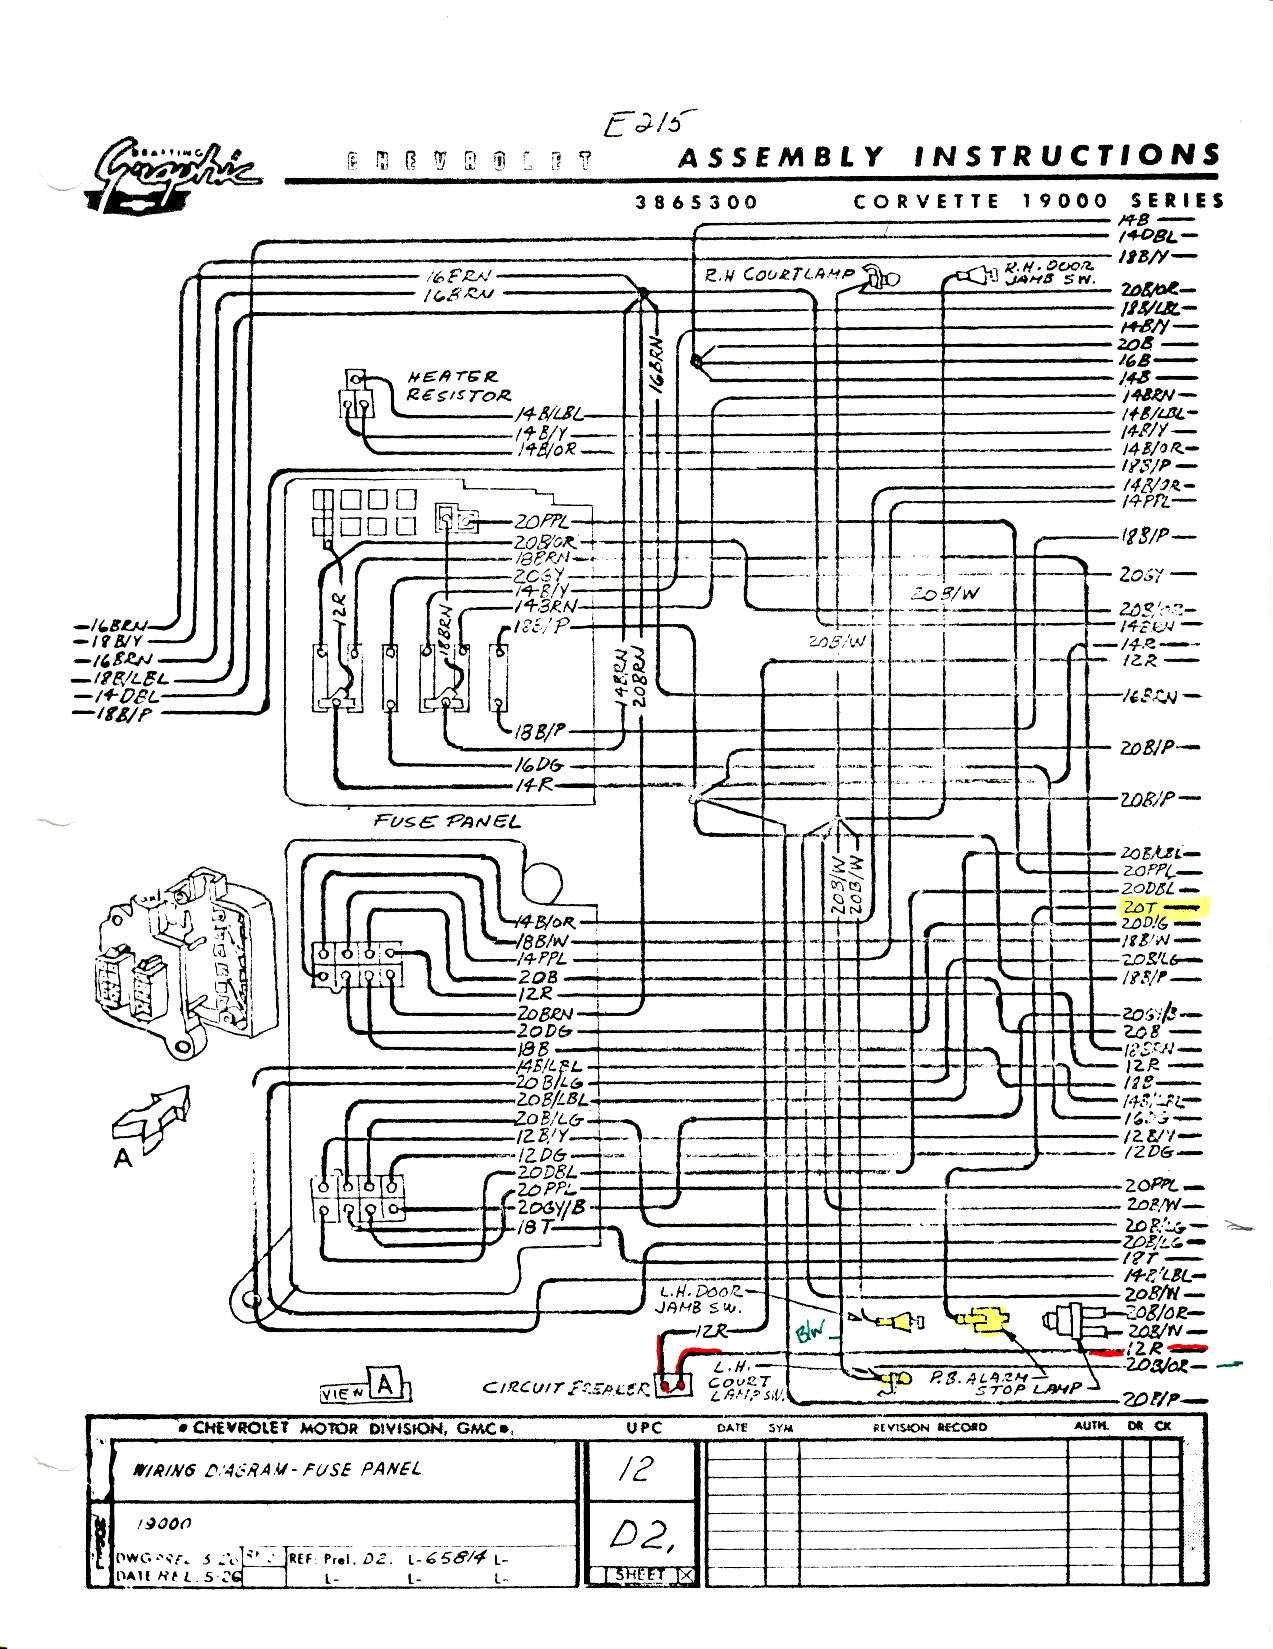 hight resolution of c4 corvette dash wiring diagram free picture wiring diagram schc4 corvette wiring diagram wiring diagram name